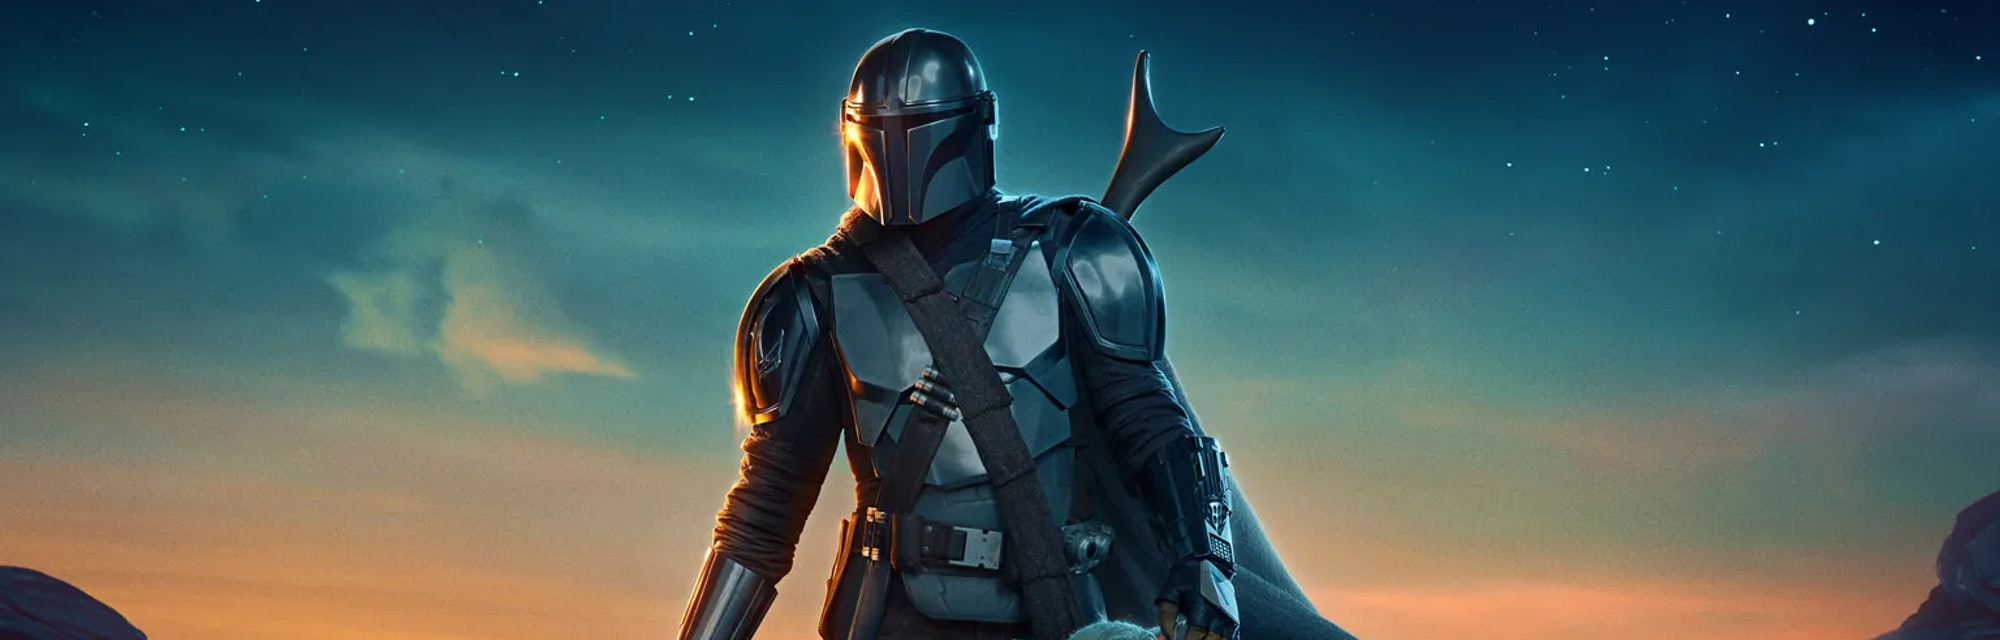 Mandalorian Season 2 Boba Fett Will Return For 1 Canonical Reason